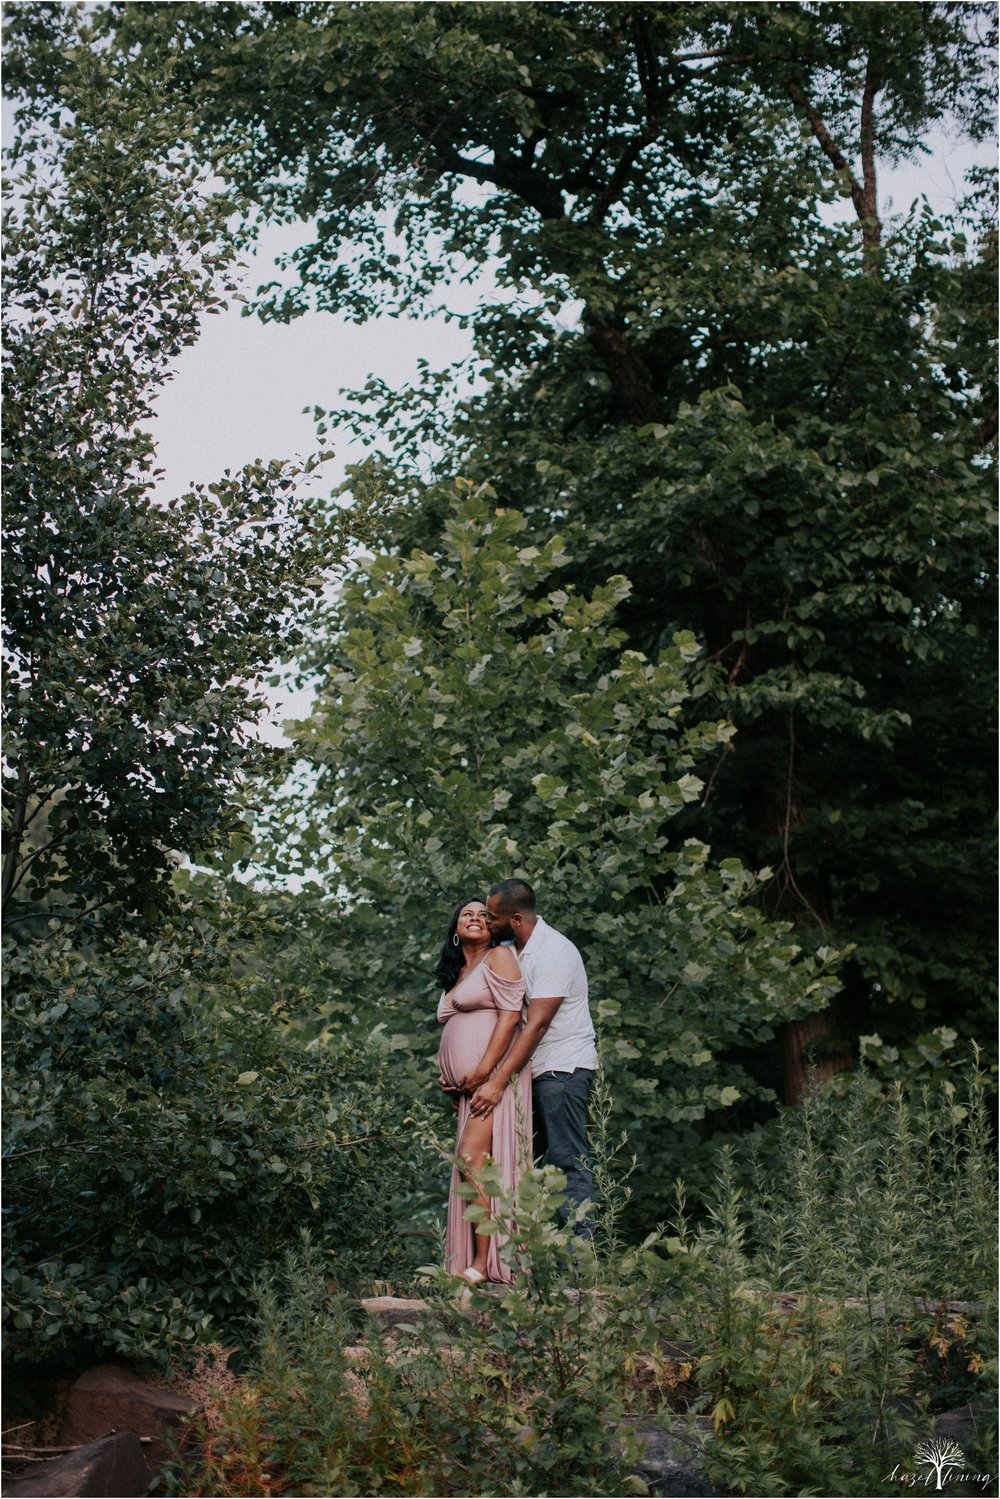 leyka-kristofer-chaparro-ralph-stover-state-park-summer-golden-hour-stream-maternity-session-hazel-lining-travel-wedding-elopement-photography_0014.jpg